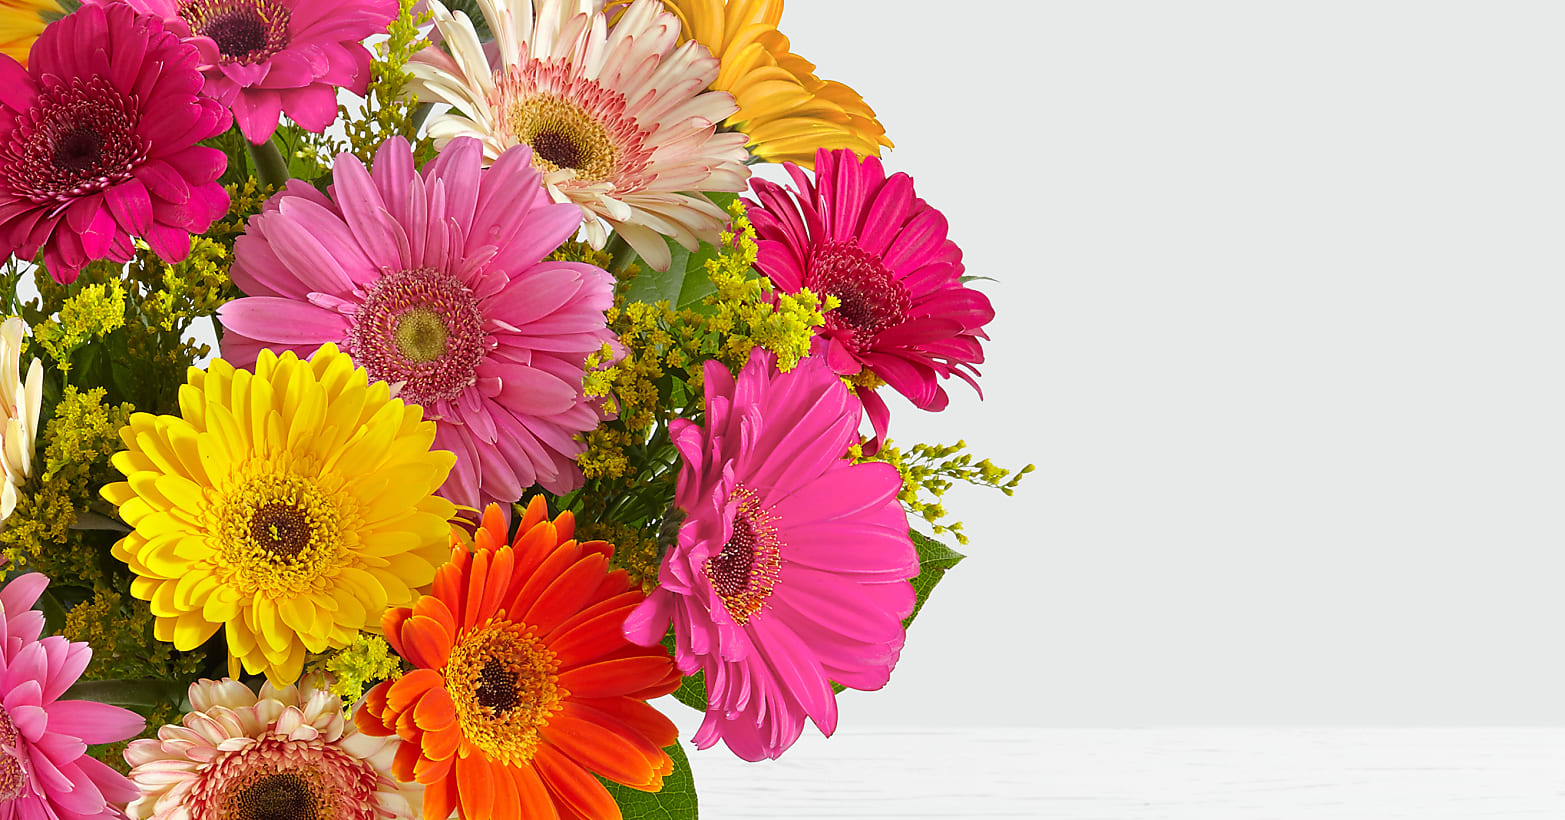 Colorful Gerbera Daisies - Image 3 Of 4